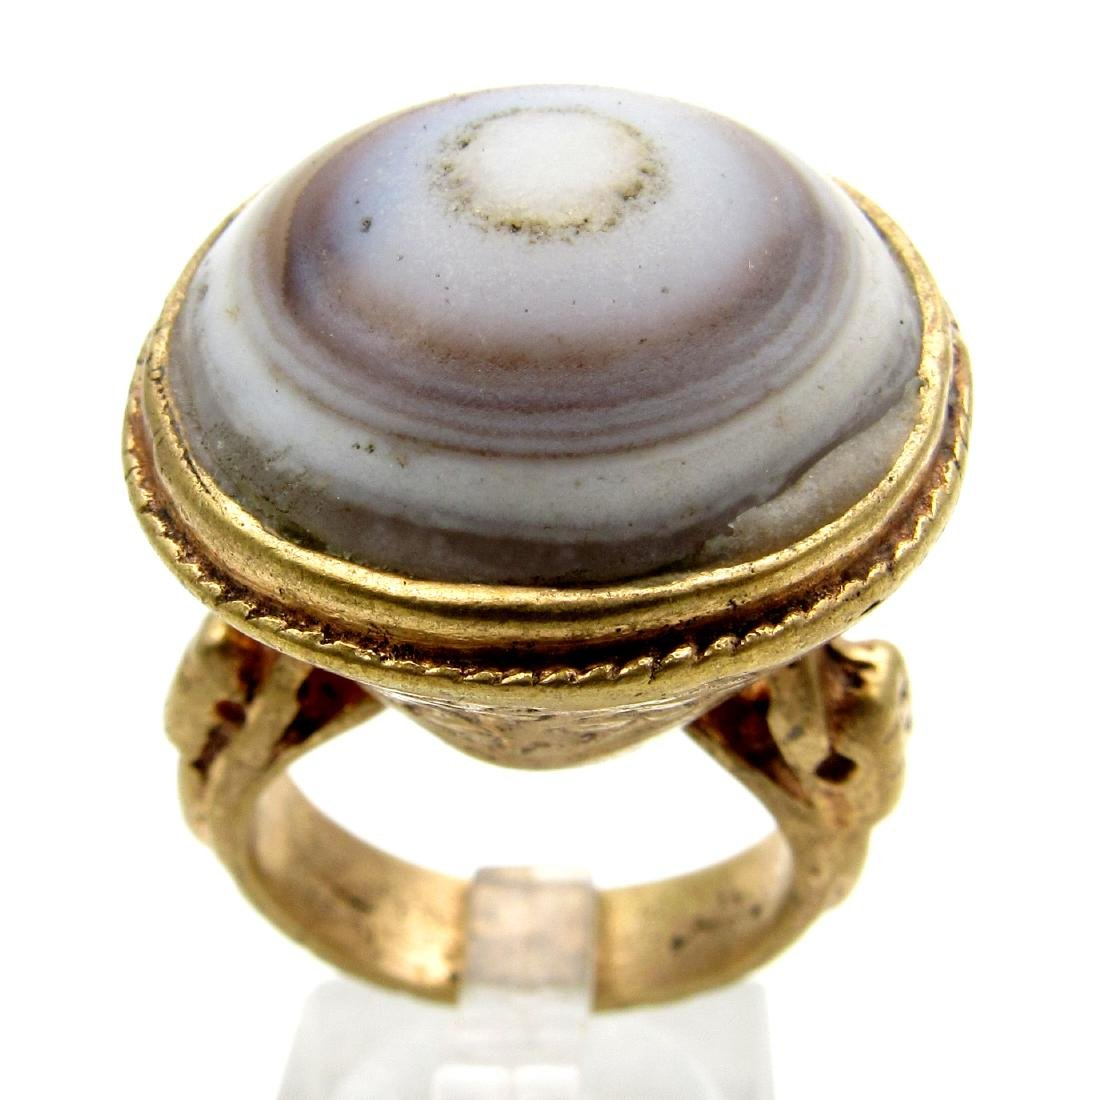 Middle Eastern Ring with Large Agate Stone